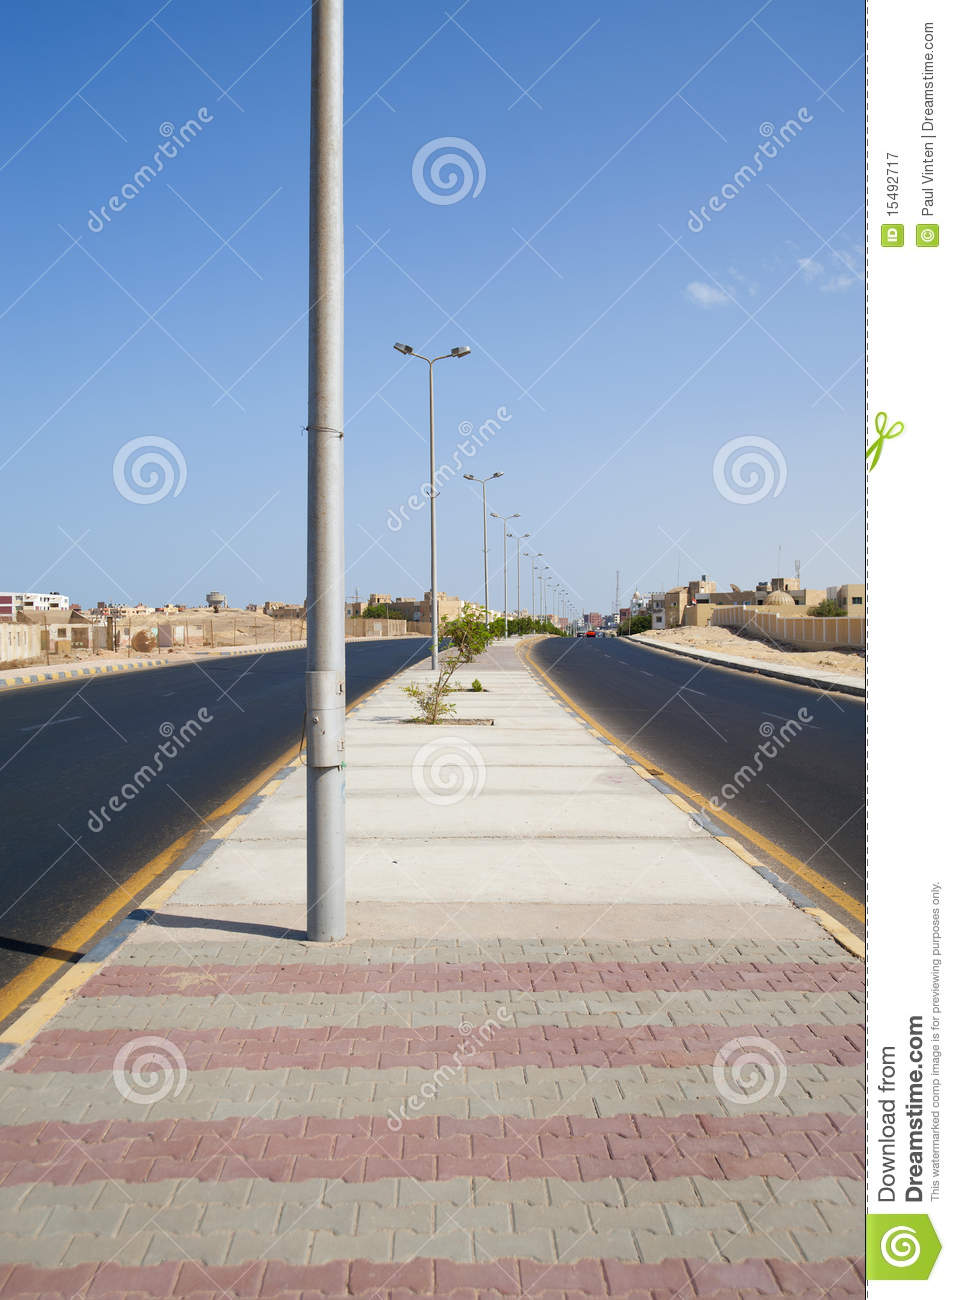 Aspalt Road Near River Under Cloudy Sky Royalty Free Stock